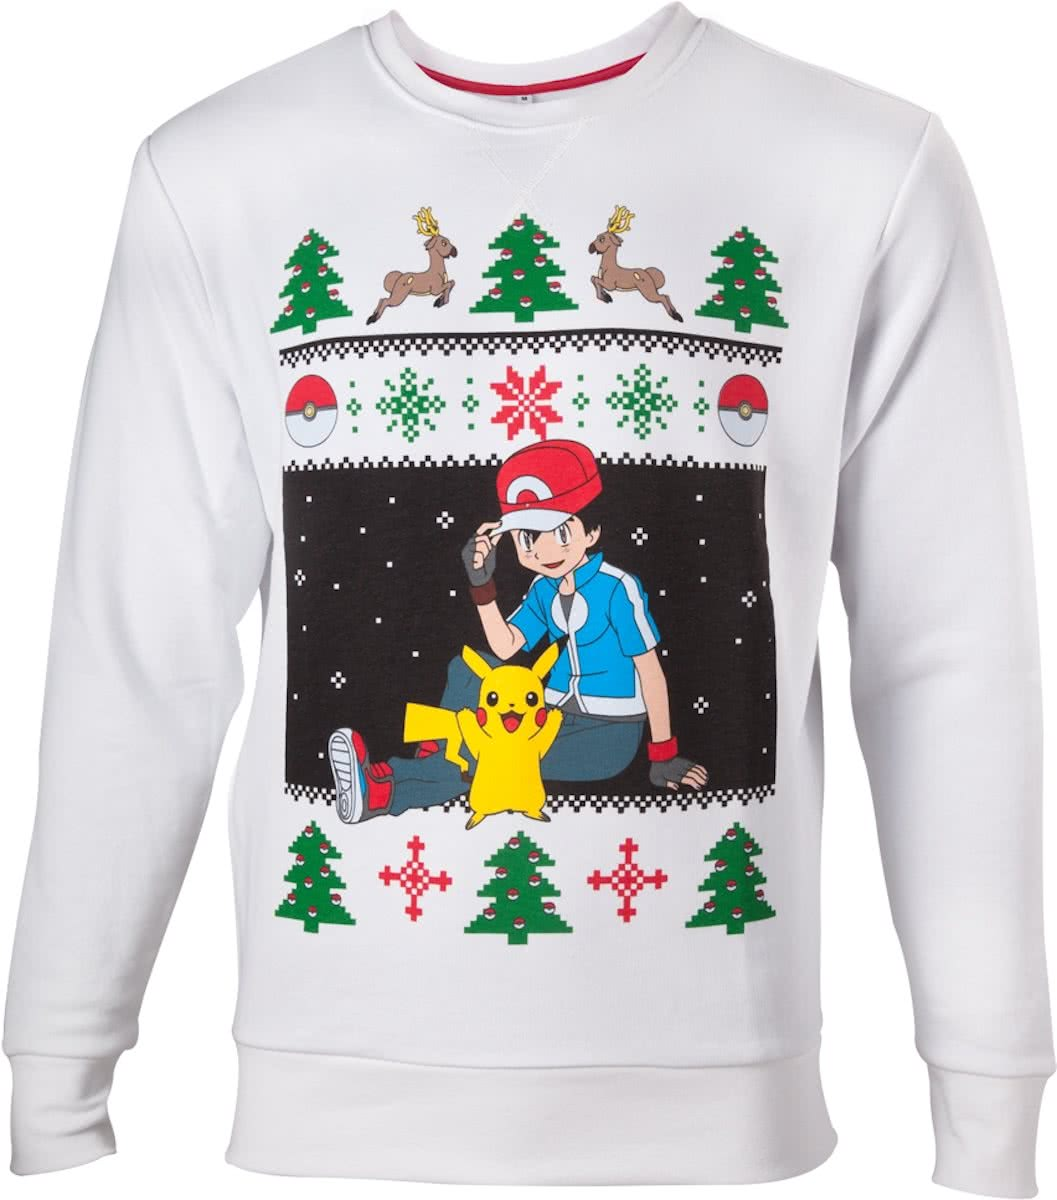 POKEMON - Sweater Ash and Pikachu Christmas (L)